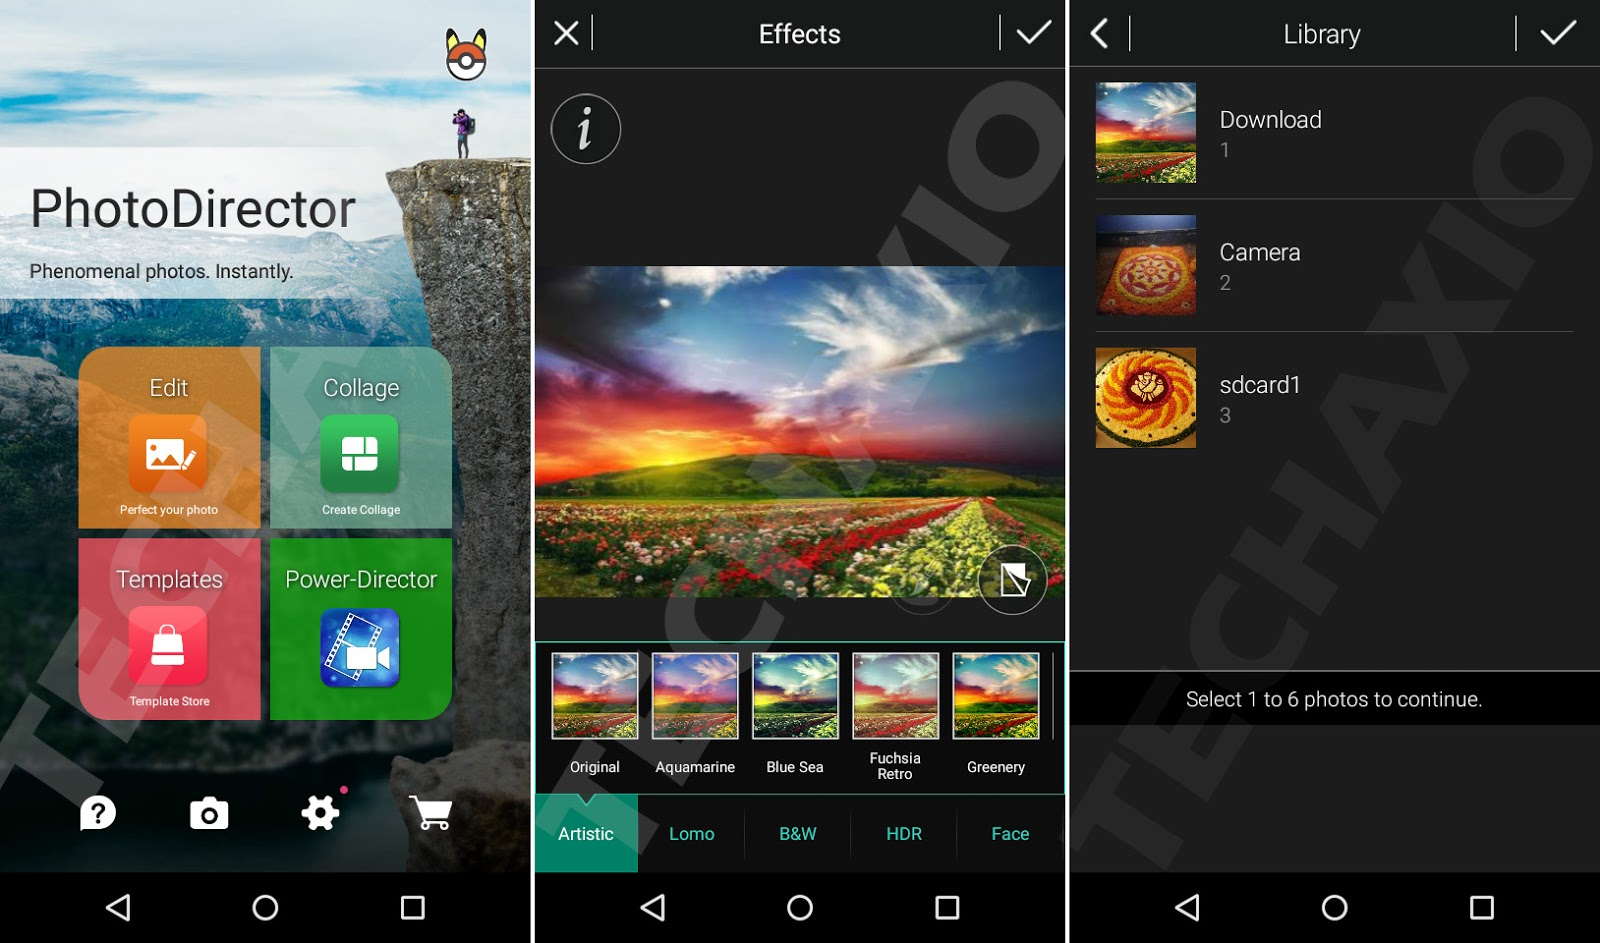 PhotoDirector Photo Editor Screenshots